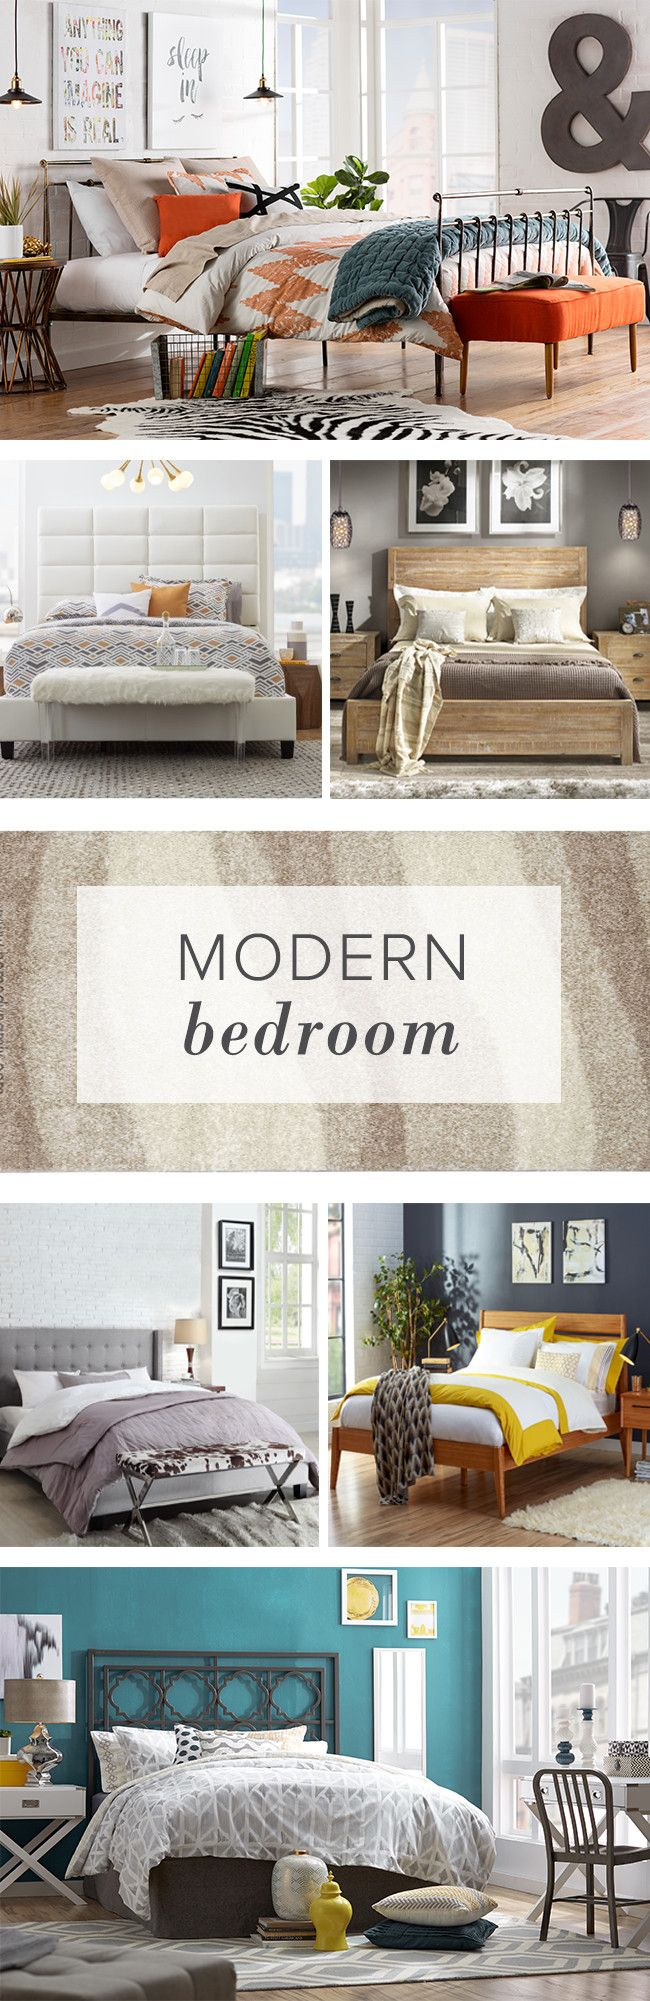 Is your bedroom in need of a refresh? Whether you need a new bed, nightstand, accent pillow, or dresser AllModern has everything you need for a fresh, chic update. Visit AllModern today and sign up for exclusive access to sales plus FREE SHIPPING on orders over $49.